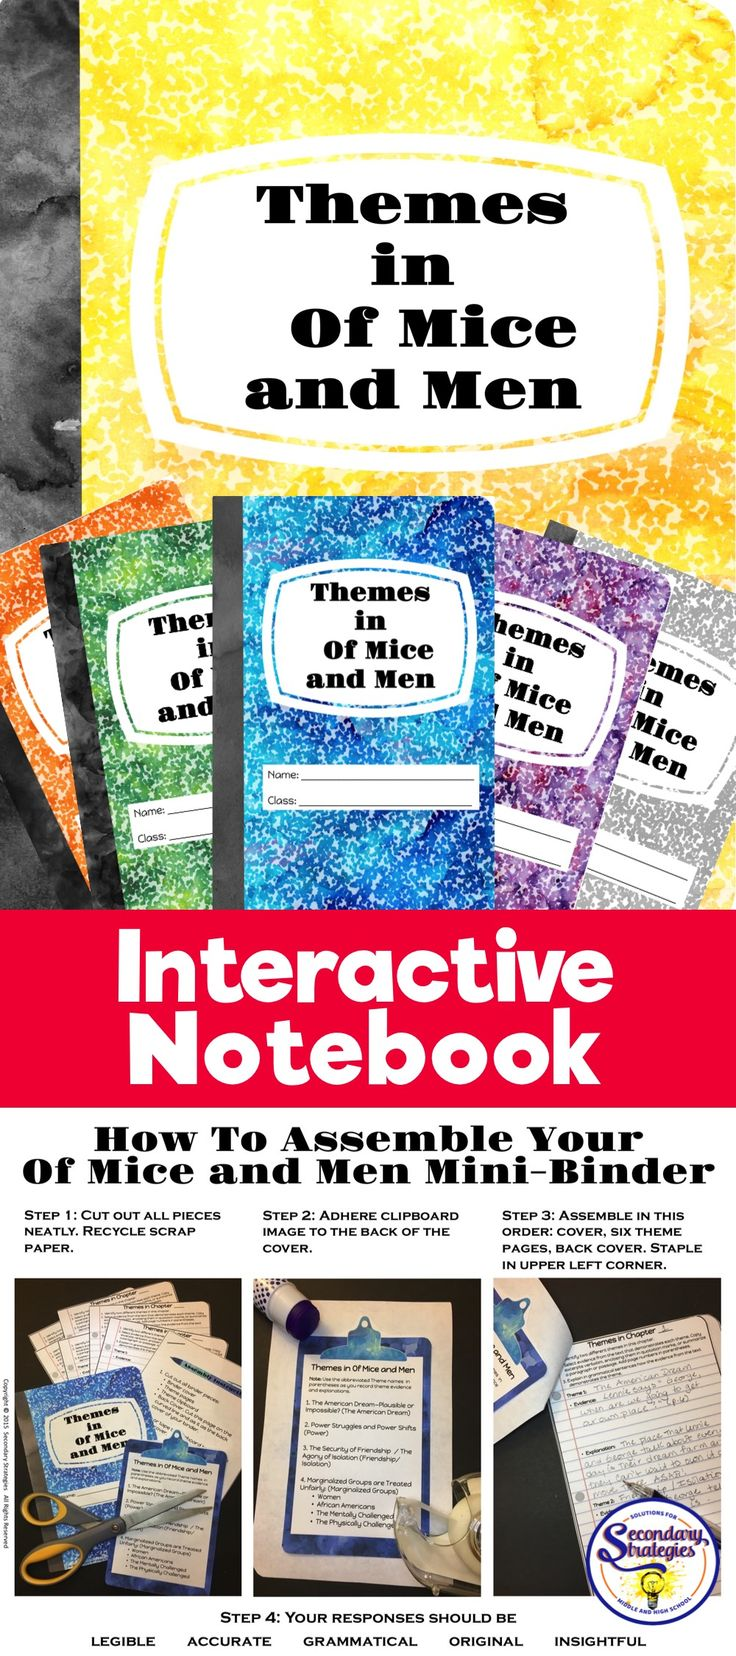 """Teach the themes in Steinbeck's Of Mice and Men with this hands-on, interactive Notebook """"Mini-Binder."""" Includes Themes PPT presentation, Teacher's Guide, and Examples of themes from Of Mice and Men. Minimal prep and takes only a few minutes to have students assemble. An excellent way to teach theme and to show students how to use elaboration to support evidence from the text."""